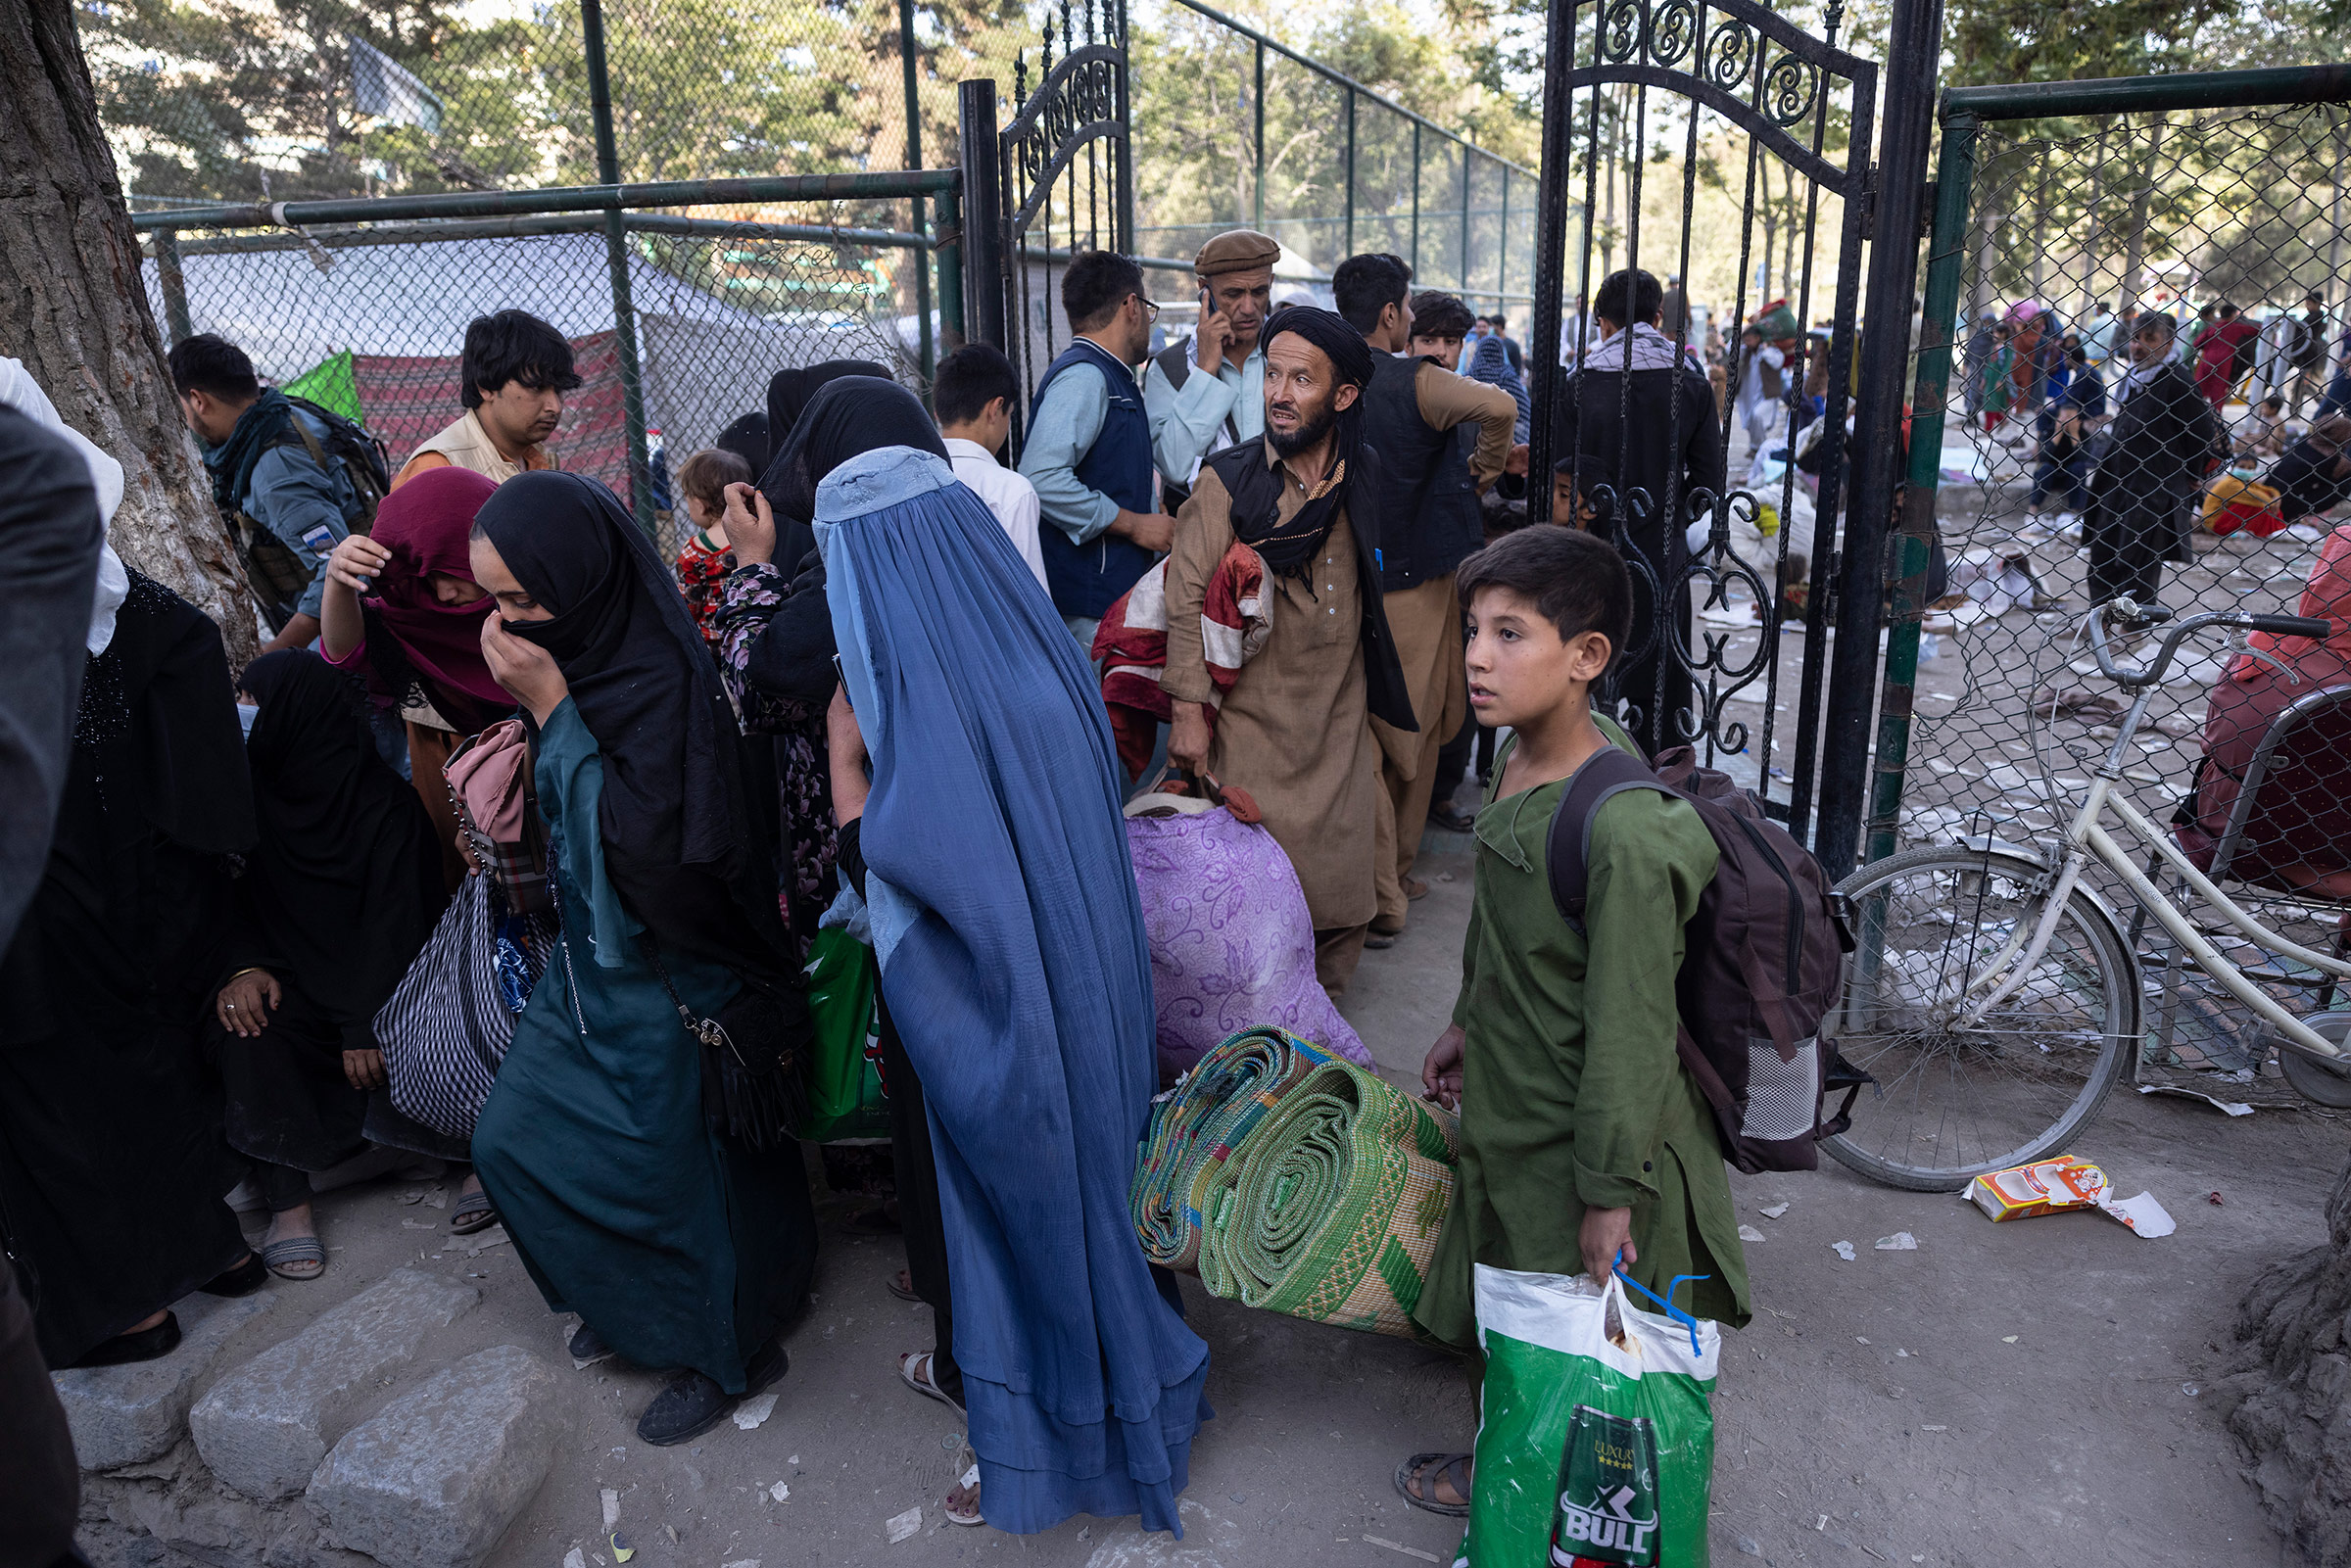 Displaced Afghans from the northern provinces are evacuated from a makeshift IDP camp to various mosques and schools in Kabul, Afghanistan on Aug. 12, 2021.